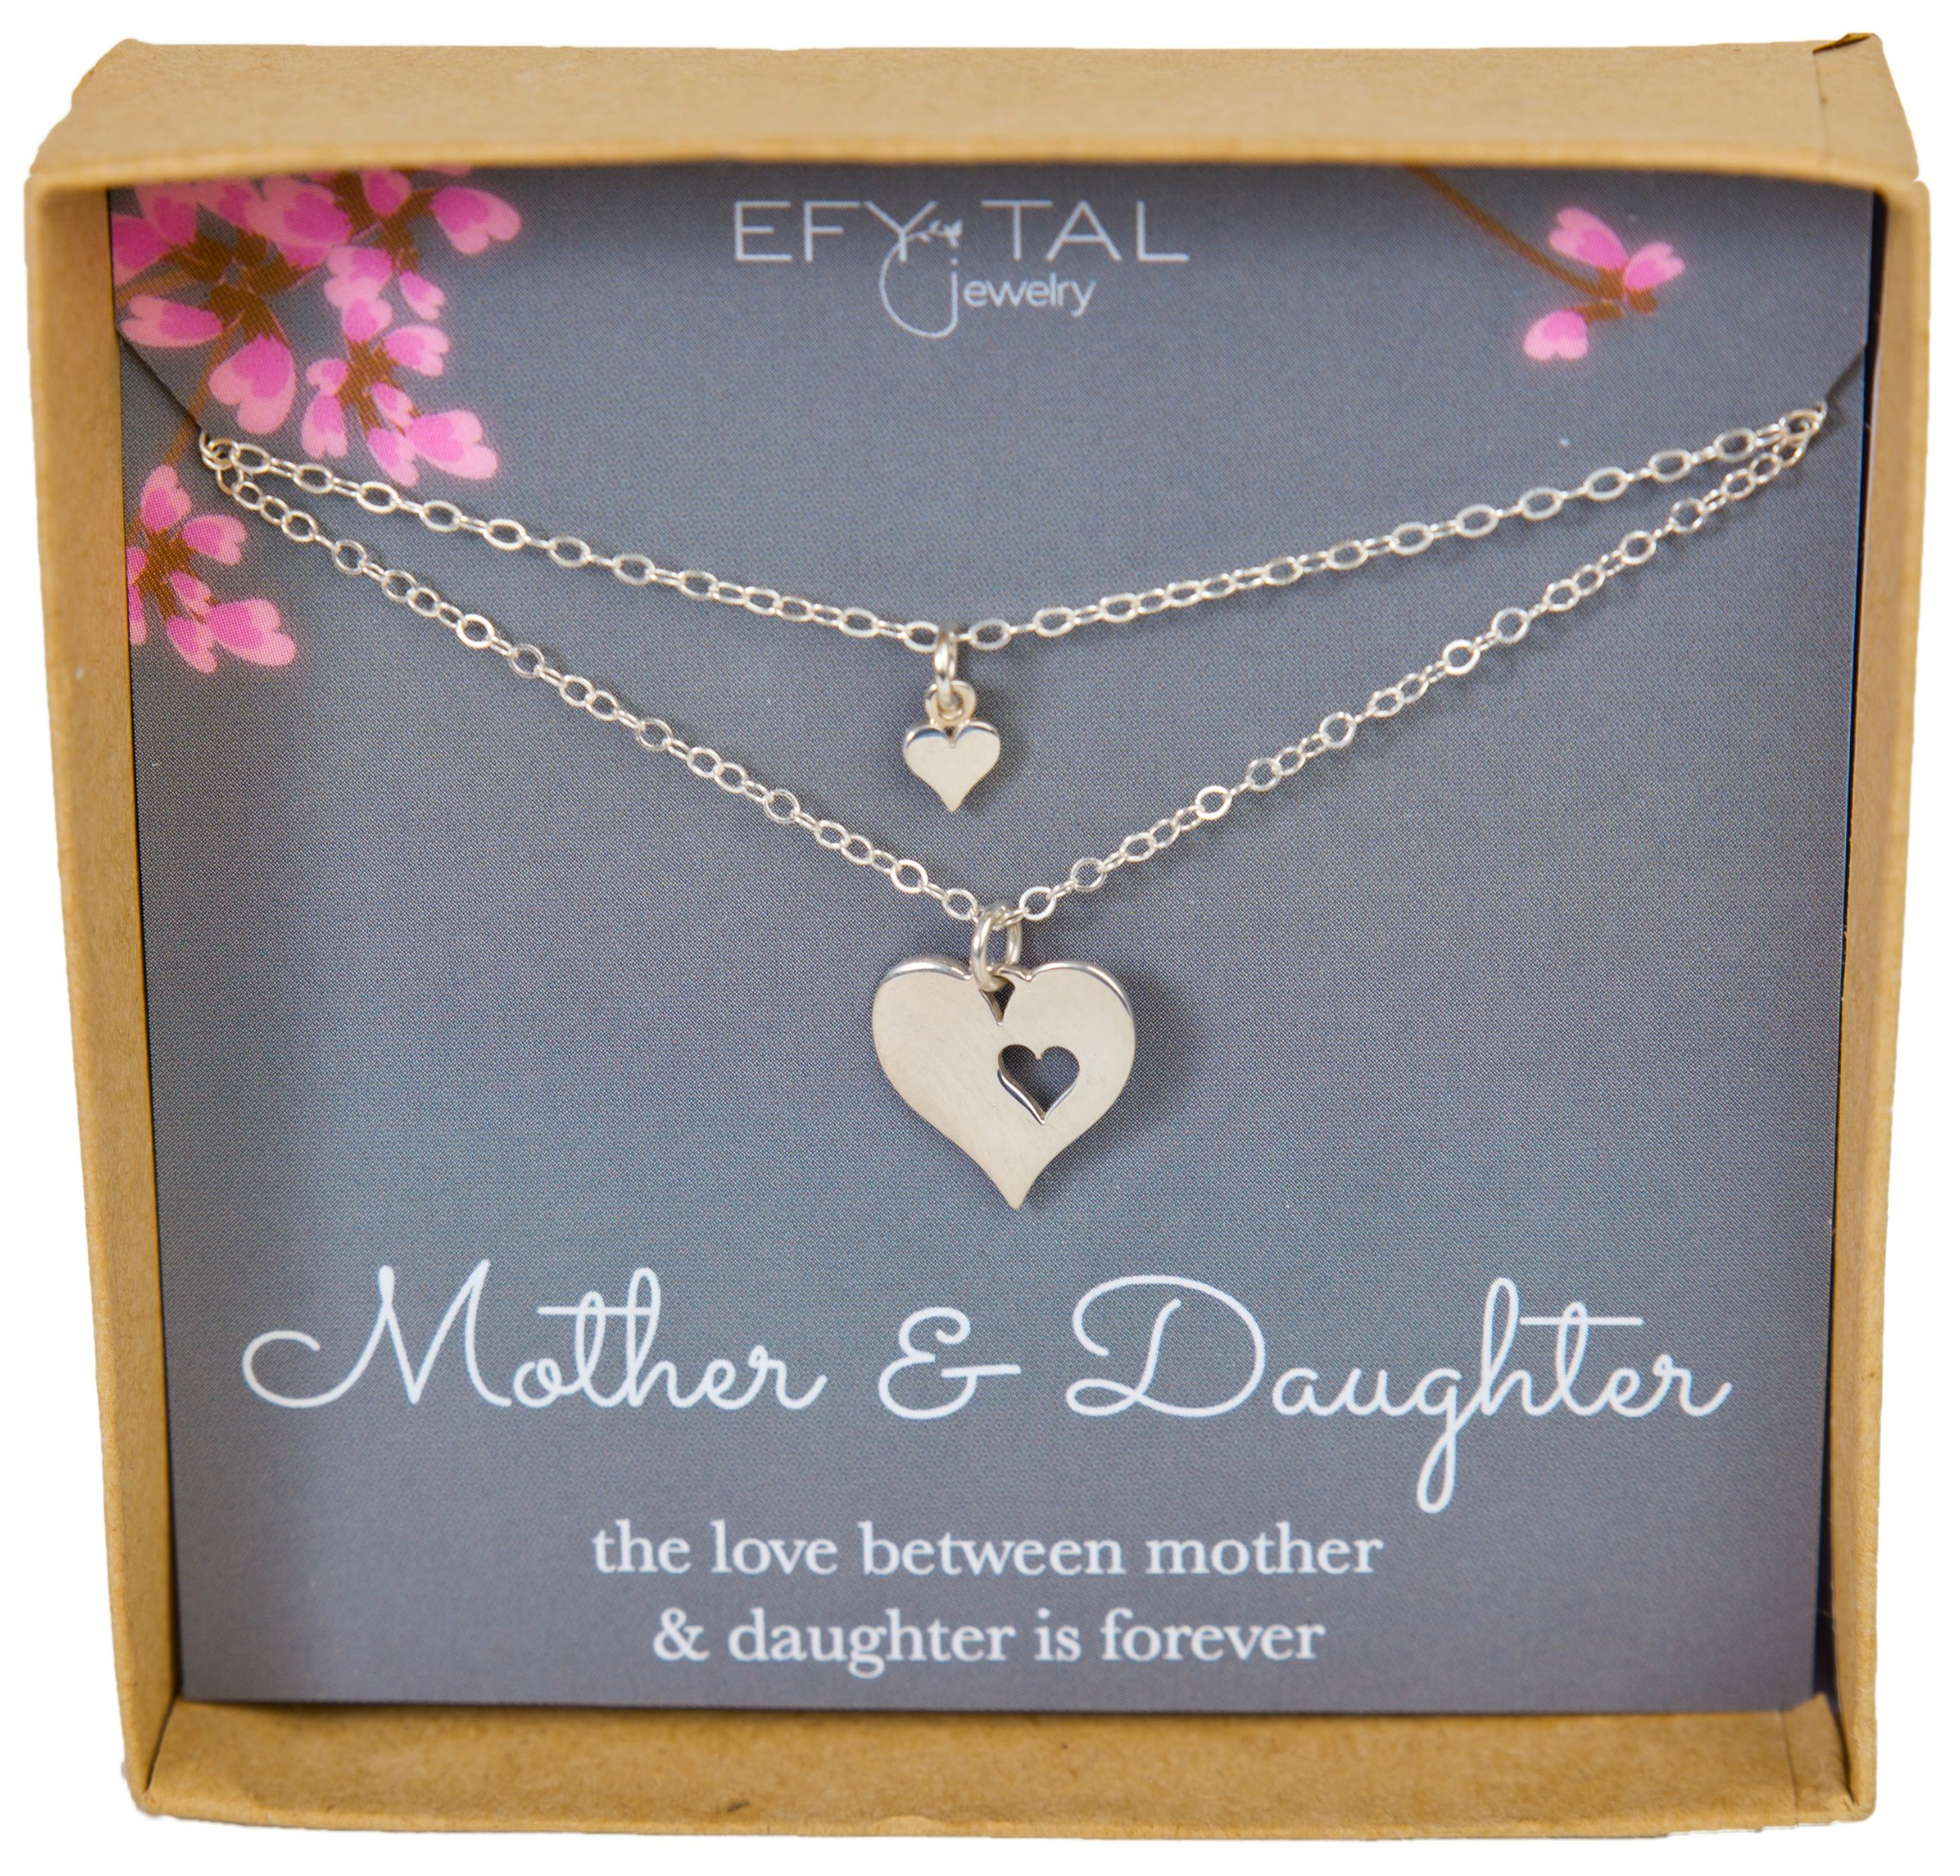 Efy Tal Jewelry Mother Daughter Set for Two, Cutout Heart Necklaces, 2 Sterling Silver Necklaces